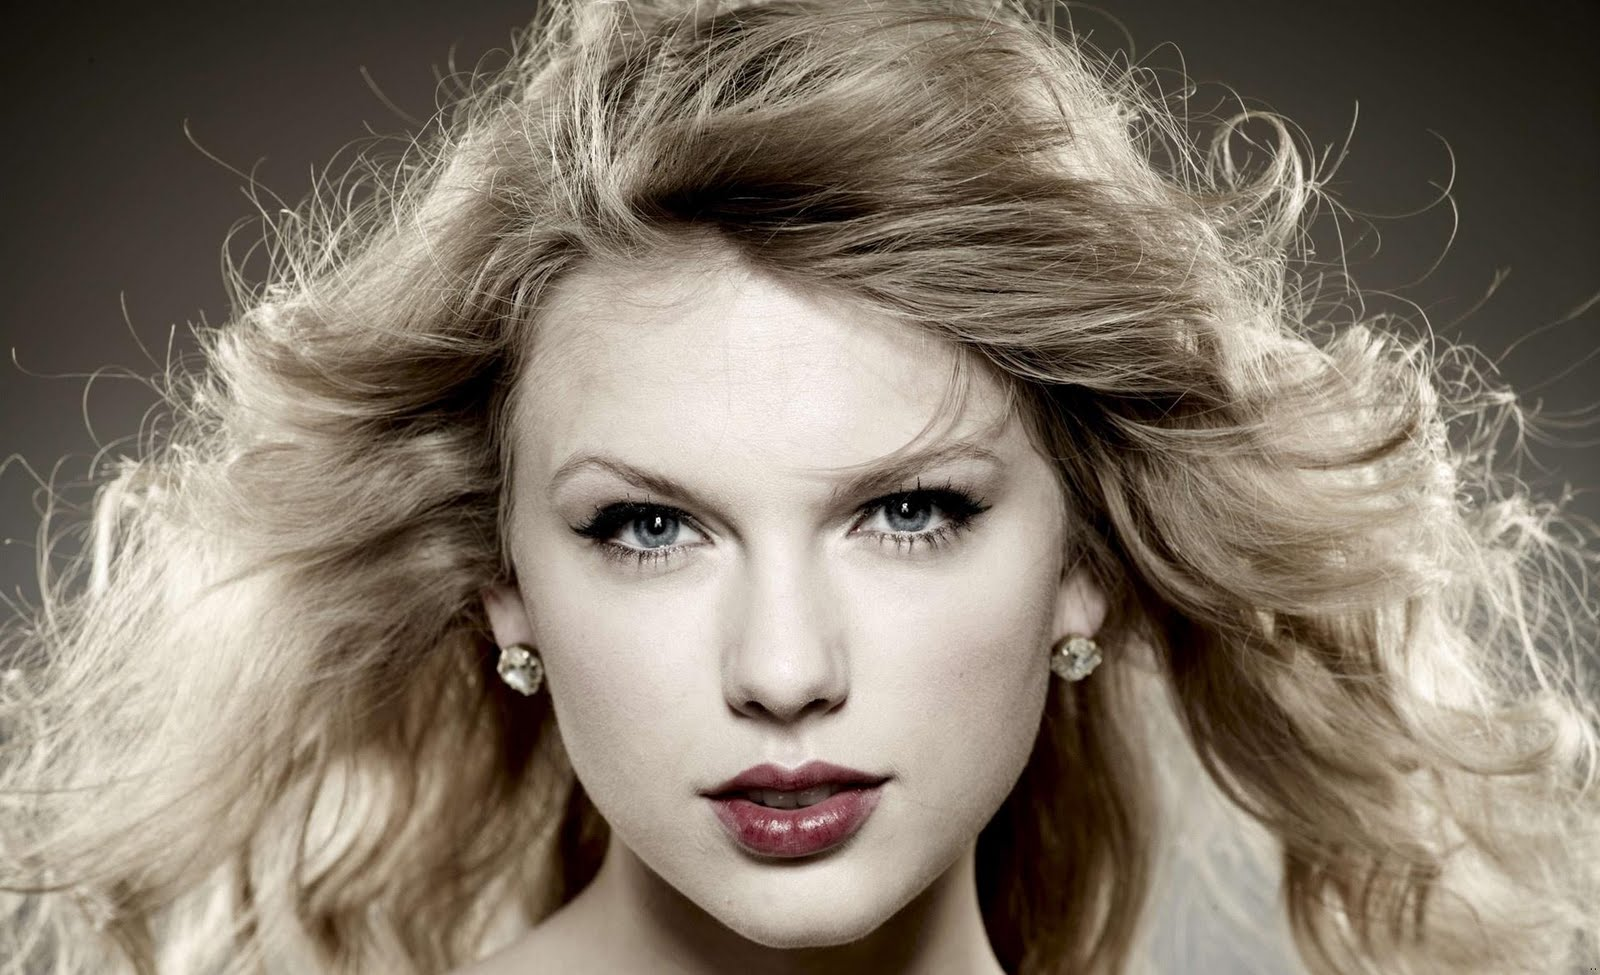 taylor swift hd wallpapers | g 1988 beasts and beauty